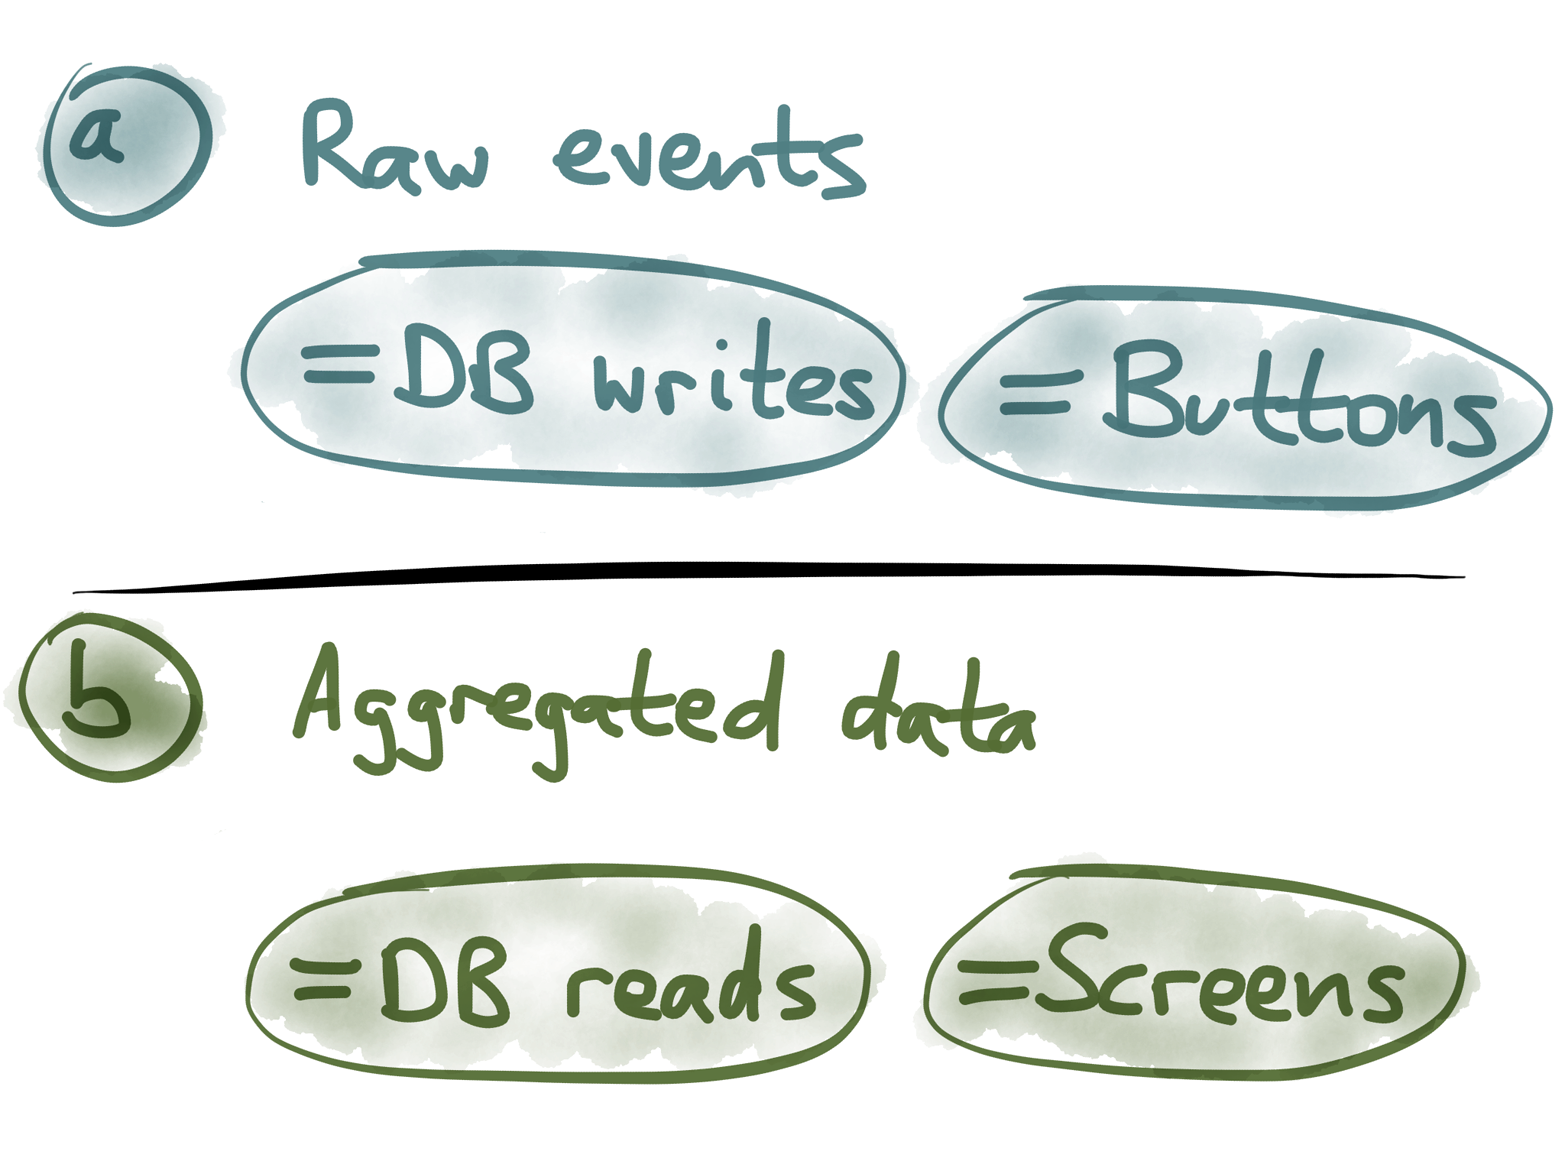 As a rule of thumb, clicking a button causes an event to be written, and what a user sees on their screen corresponds to aggregated data that is read.